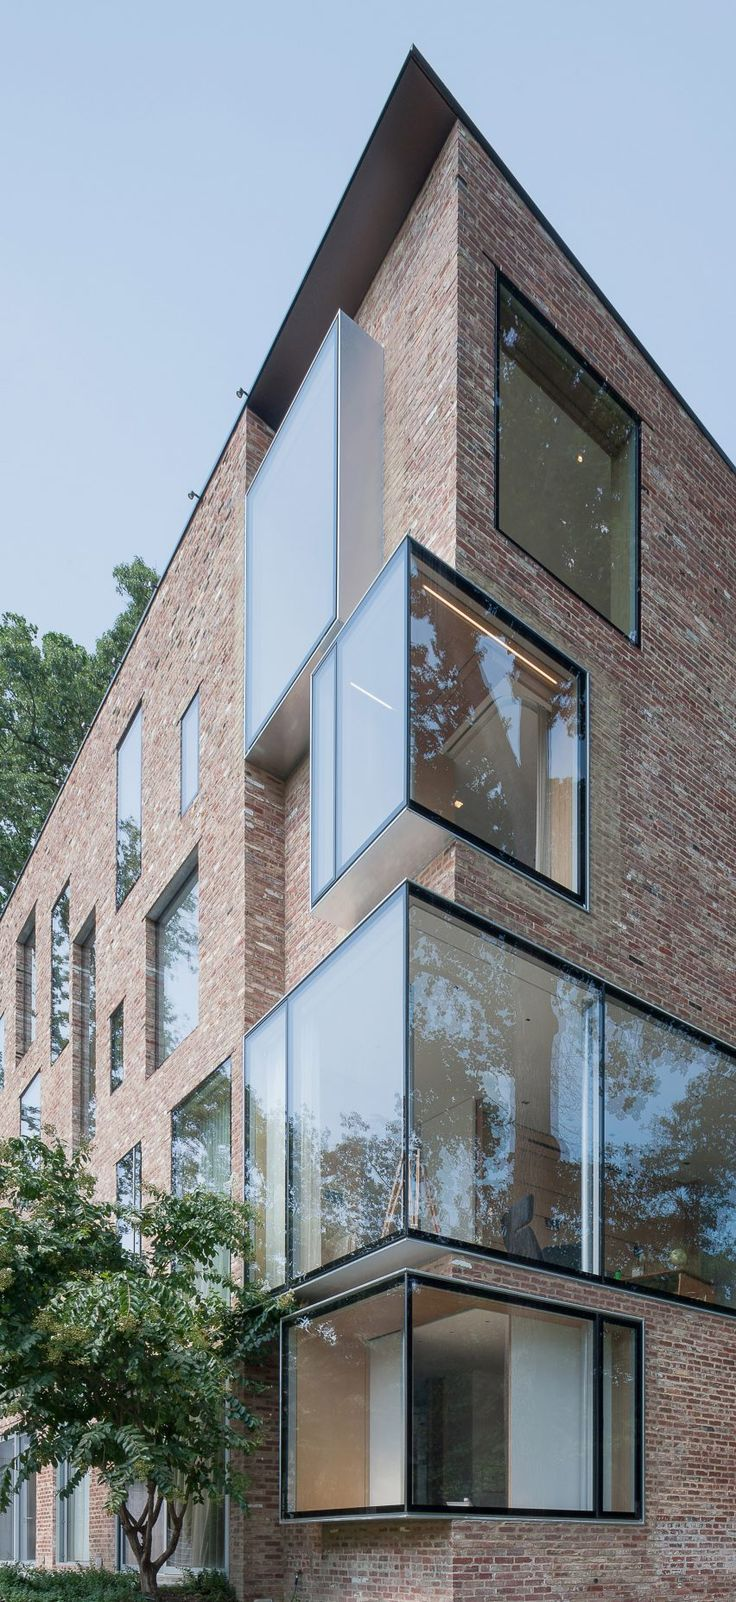 While renovating the detached Rock Creek House property, the architects removed ornamentation from the brick facades and extended the walls upward to create a larger attic space.